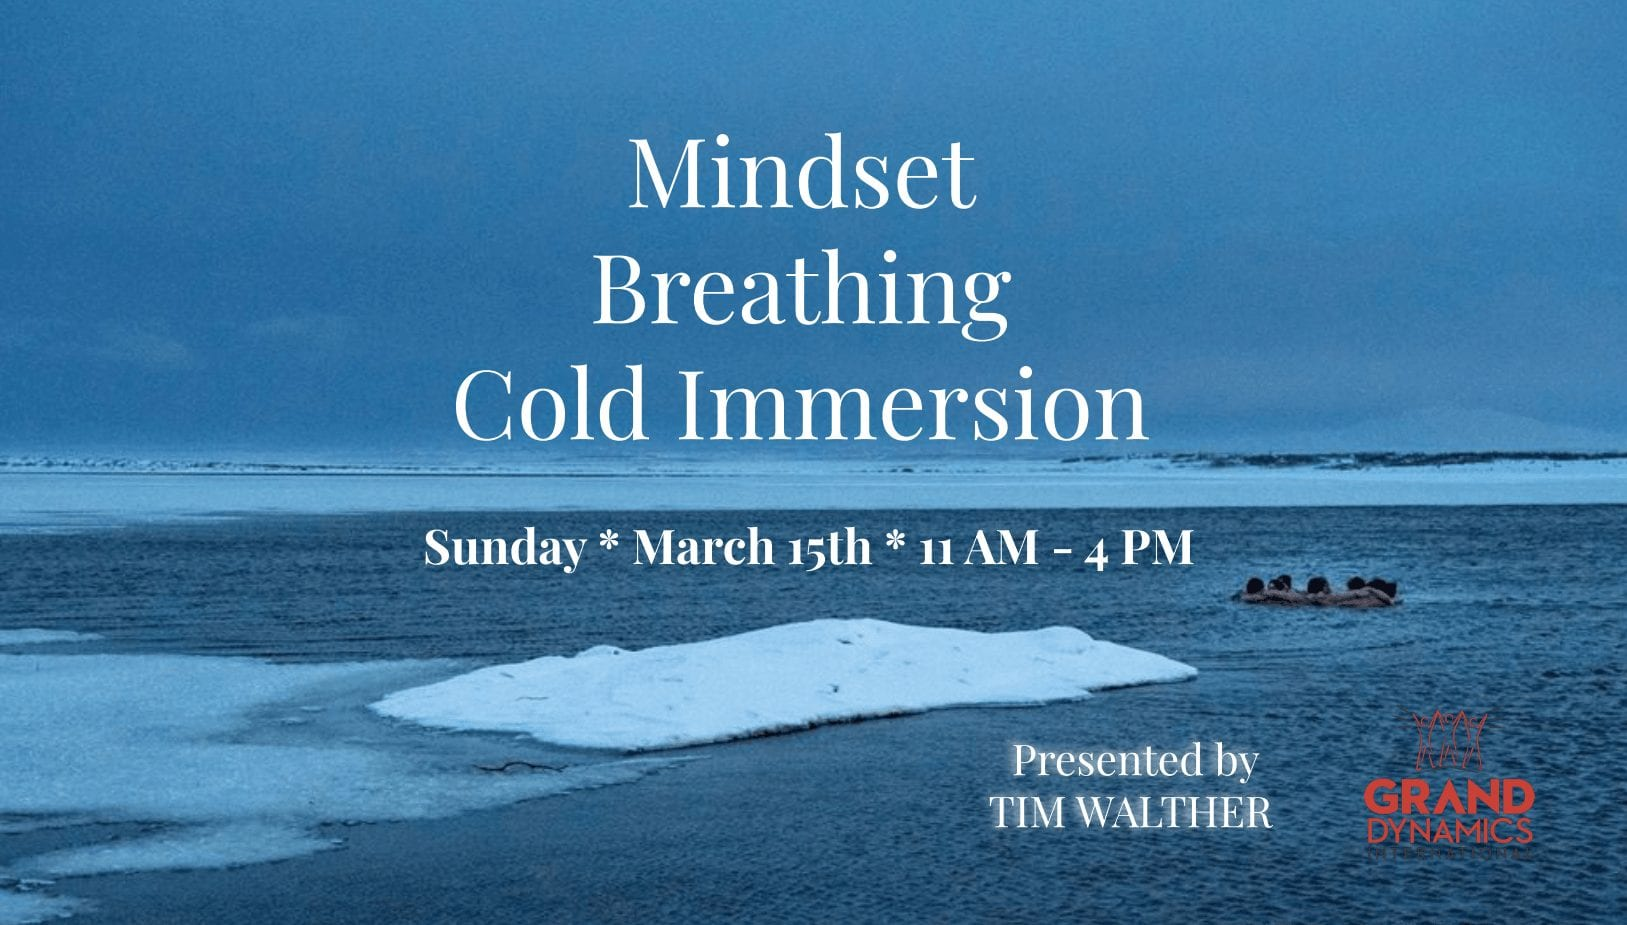 Mindset, Breathing and Cold Immersion workshop delivers powerful health benefits – by Tim Walther – March 15th 2020 – Jackson Hole, Wyoming